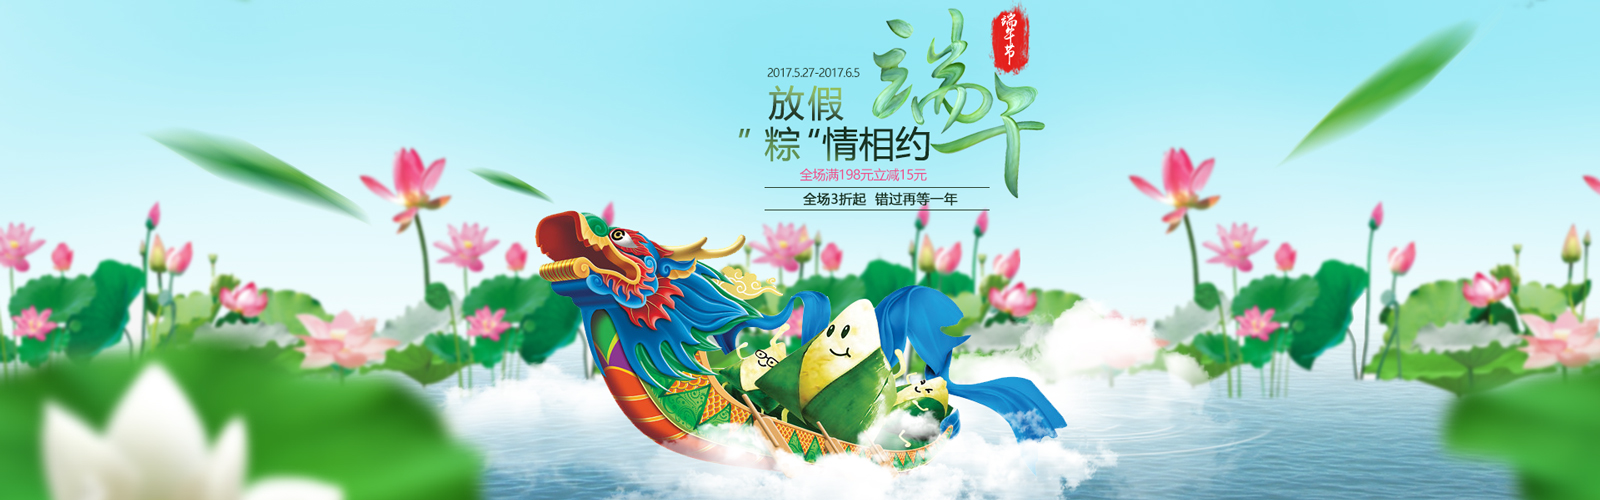 chinesefontdesign.com 2017 04 06 09 24 26 China Dragon Boat Festival advertising design banner PSD File Free Download #.2 Web advertising banners Festival poster design psd Dragon Boat Festival poster Chinese festival poster design